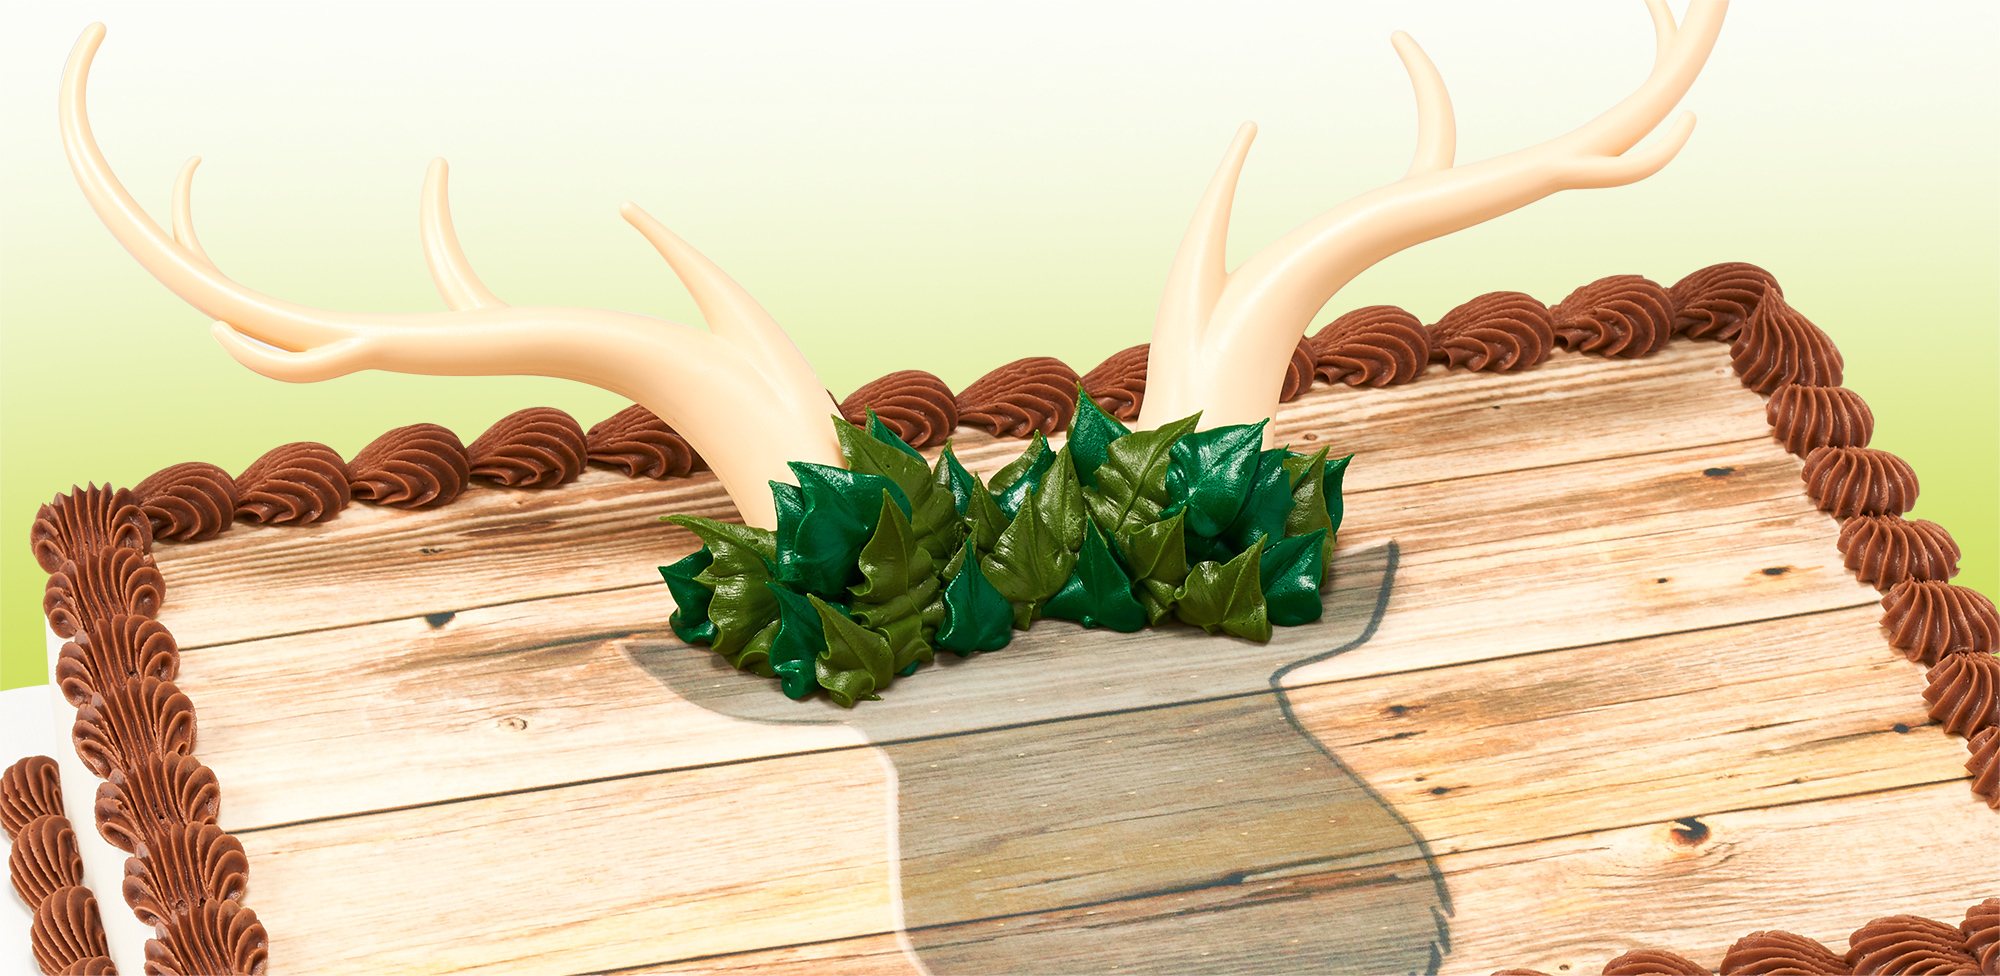 Wood Grain Deer Antler Cake